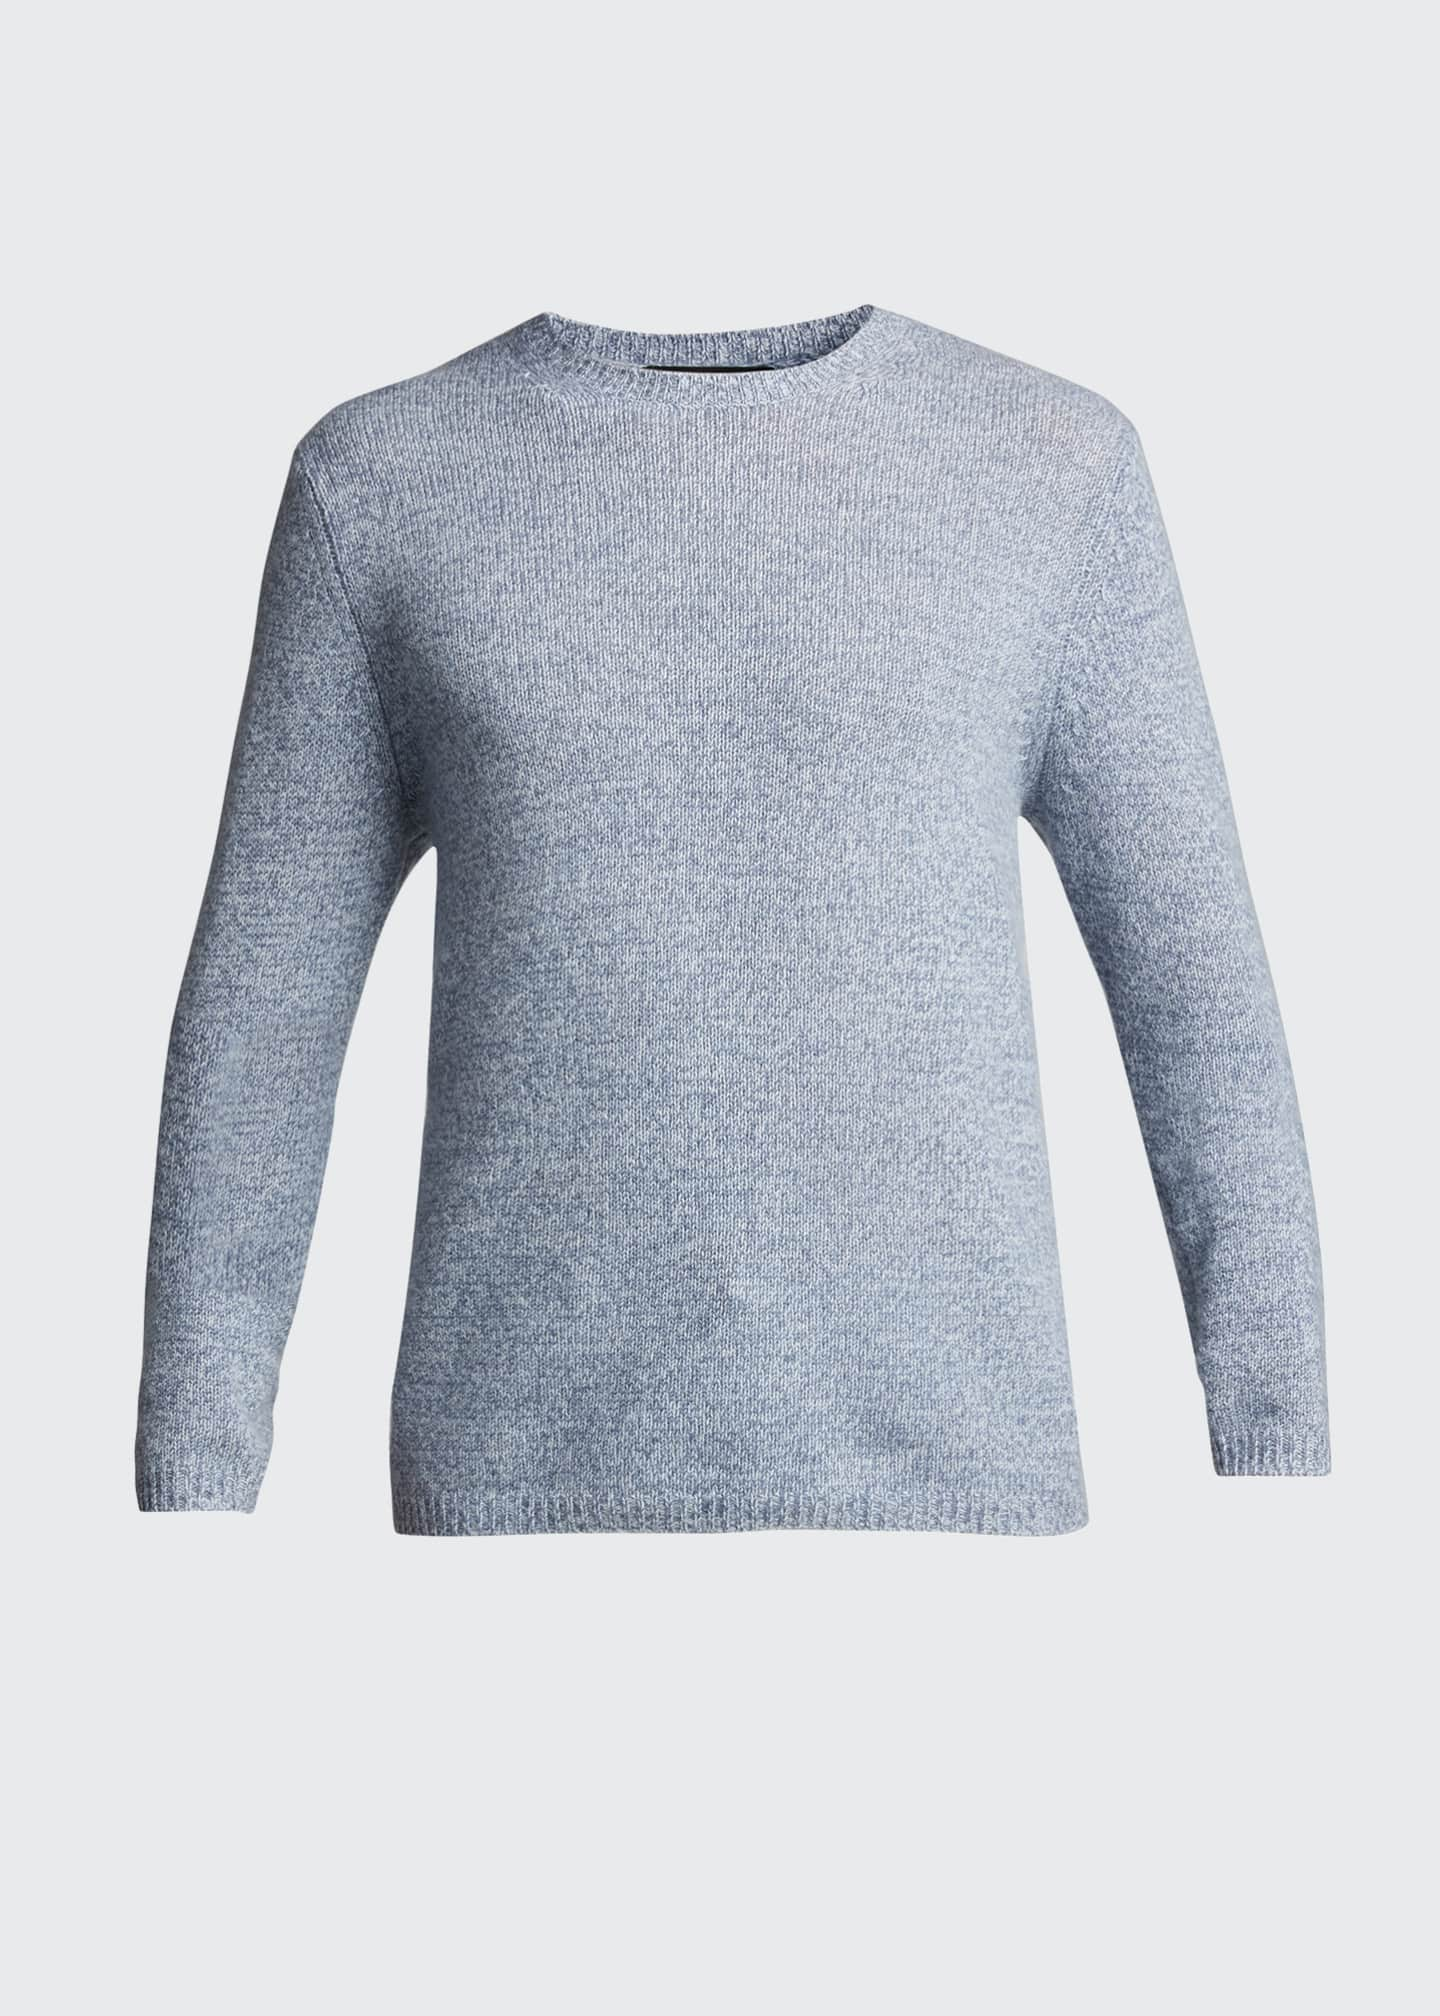 Image 5 of 5: Men's Solid Cashmere Crewneck Sweater